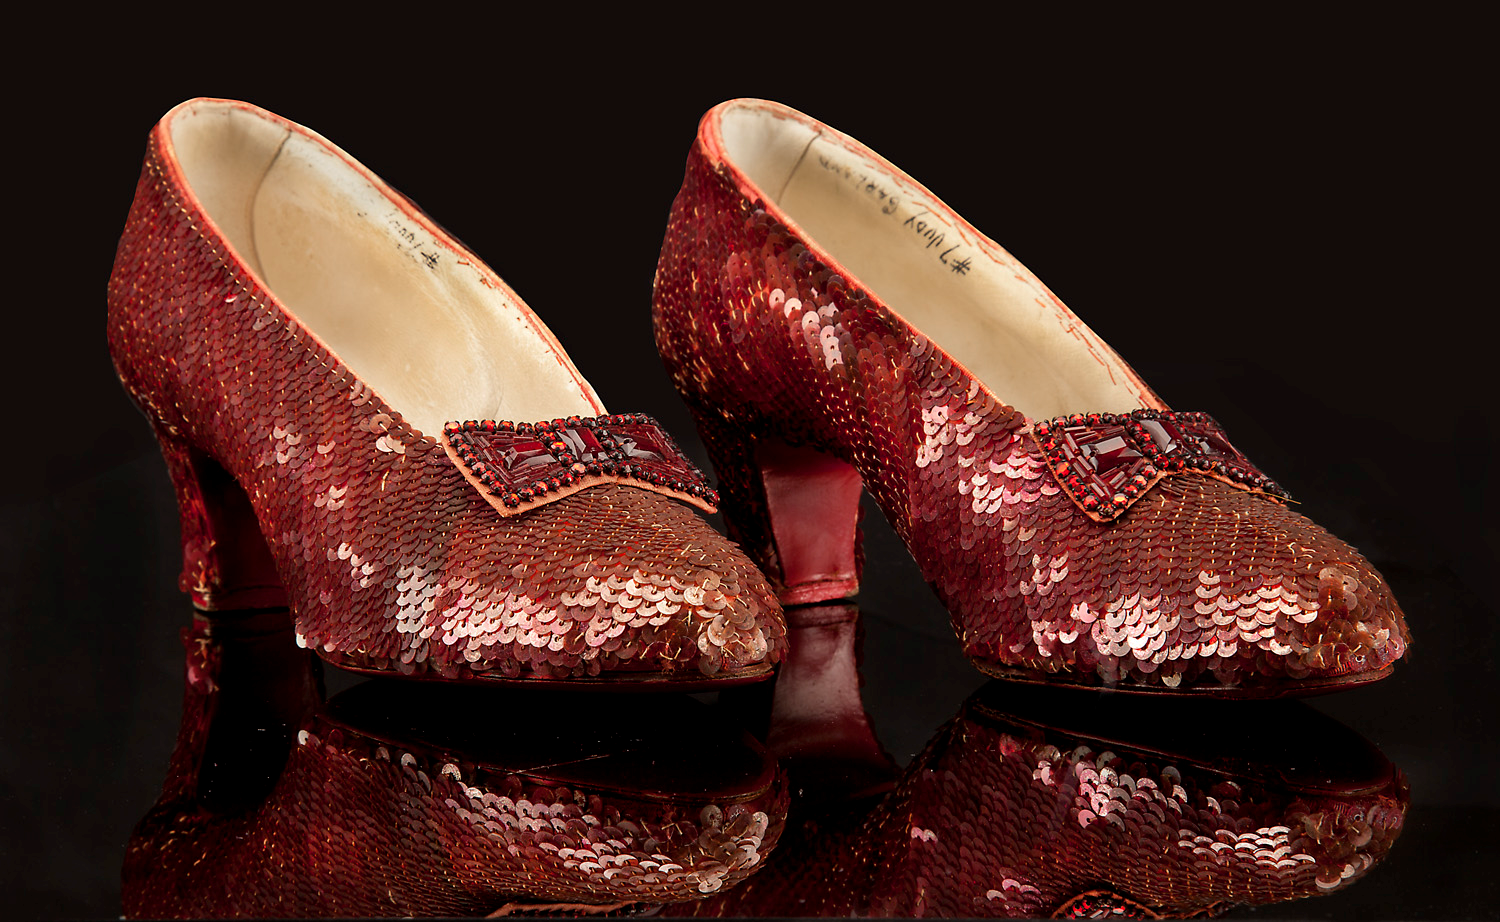 cd0703143de PROFILES IN HISTORY SET TO AUCTION OFF THE MOST ICONIC HOLLYWOOD TREASURE OF  ALL TIME THE SCREEN USED RUBY SLIPPERS FROM THE WIZARD OF OZ